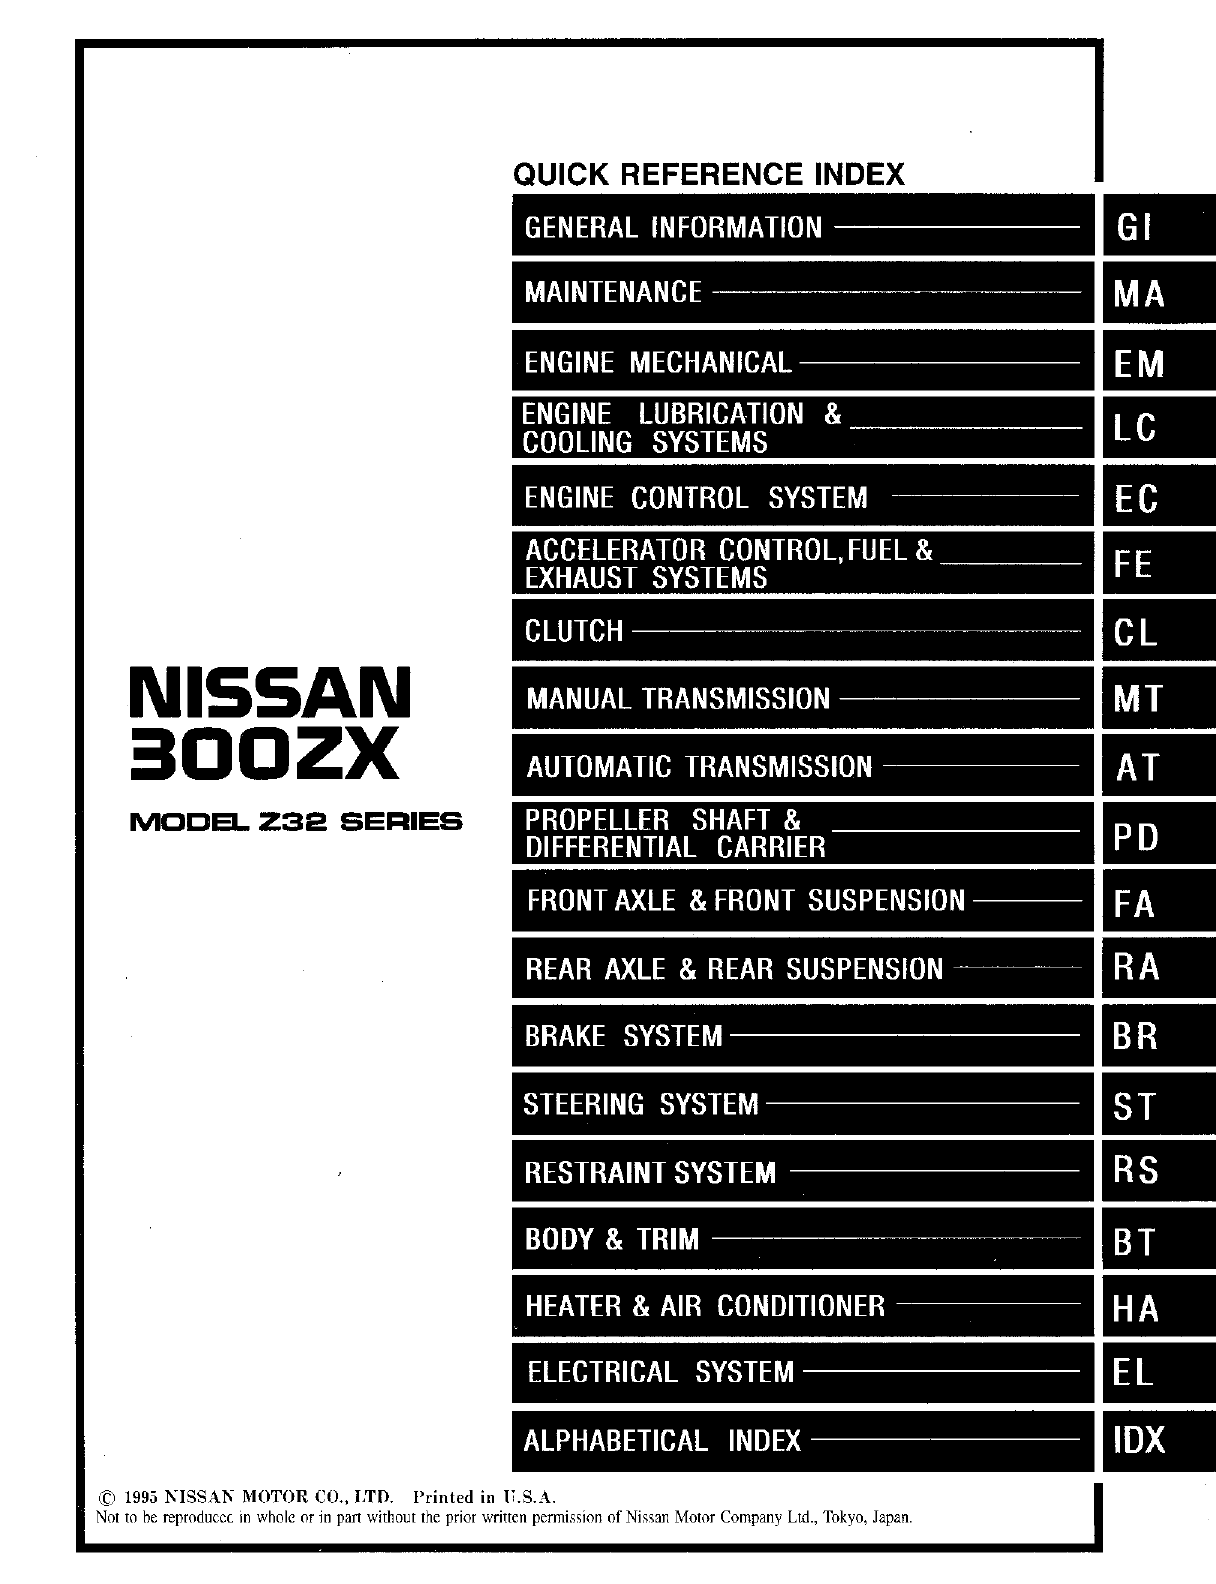 Nissan 300ZX 1996 Workshop Manual PDF